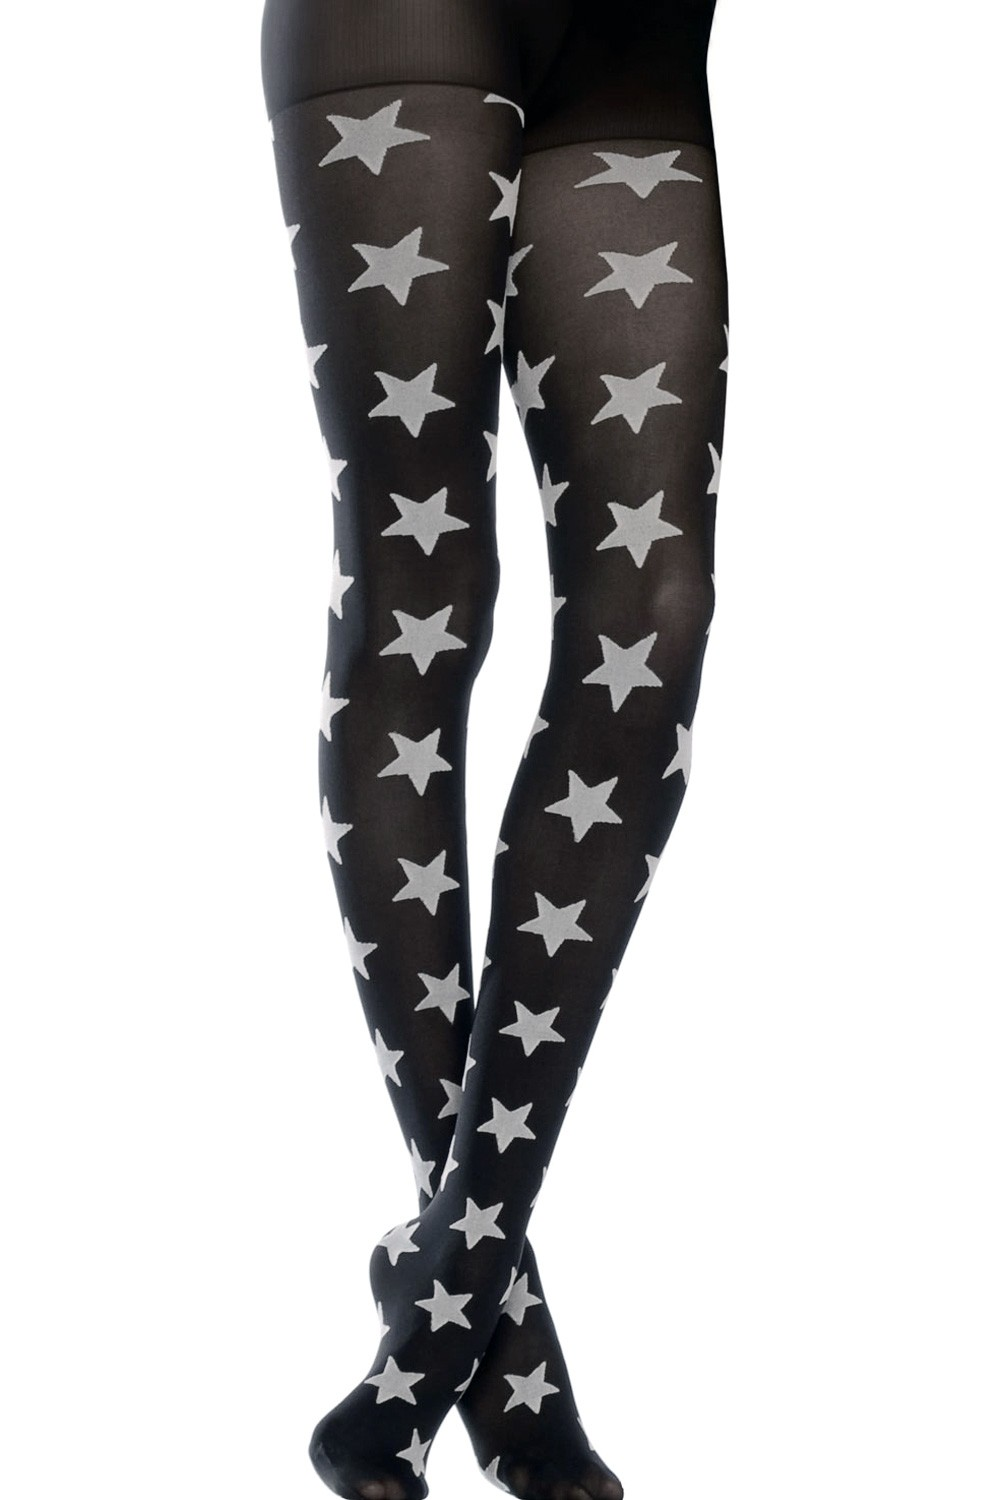 Find great deals on eBay for white star tights. Shop with confidence.